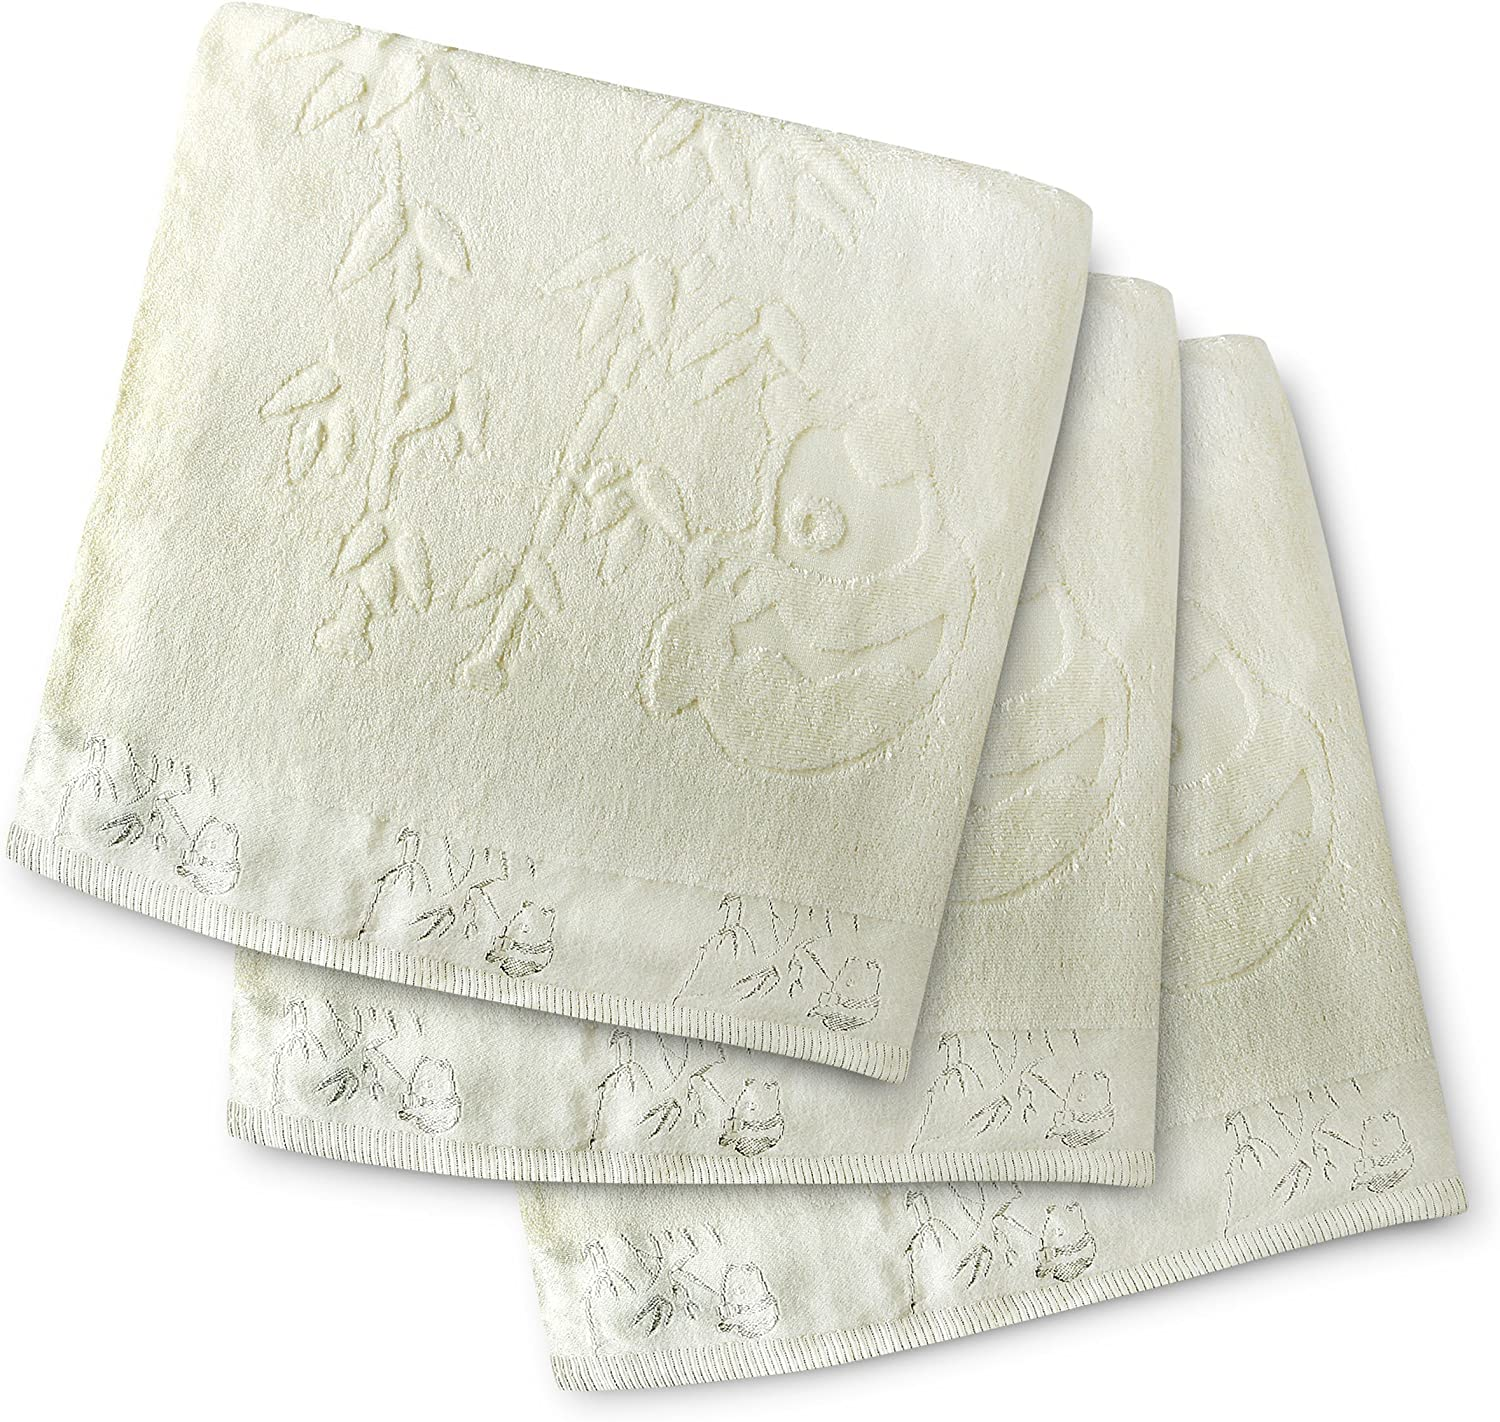 28 inch X 55 inch Off-White Soft Antifungal Hypoallergenic Absorbent Bath Towels Beautiful /& Unique 3 pc set Brooklyn Bamboo